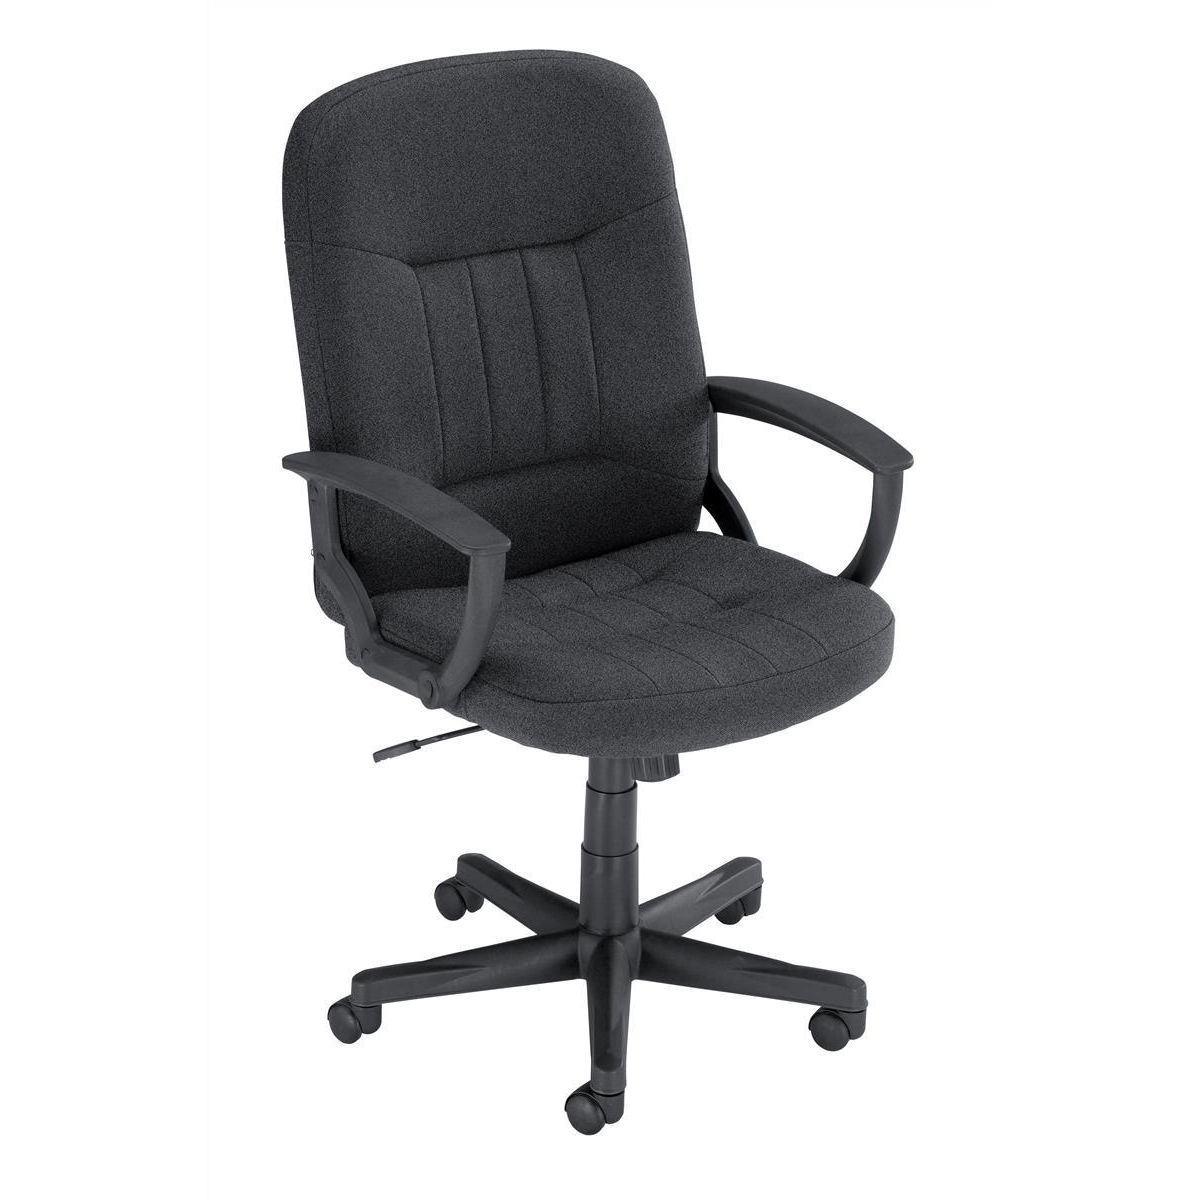 Task seating Trexus County Manager Chair Charcoal 520x420x420-520mm Ref 517067